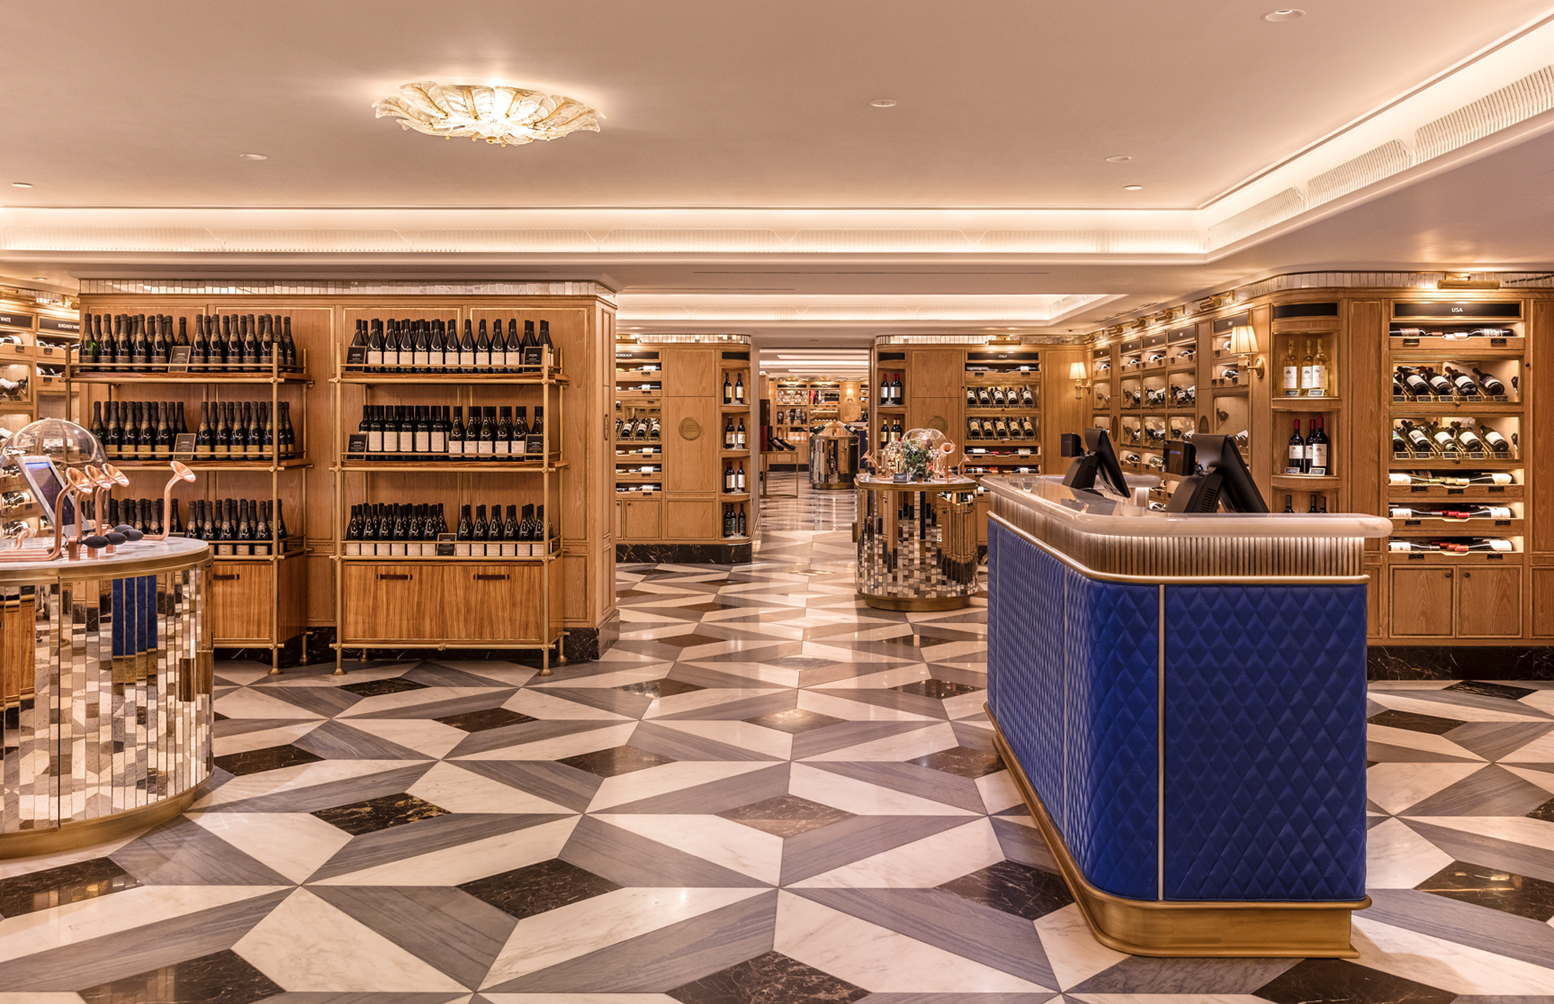 Harrods Wine and Spirit Rooms west end venues events aroma tables private tastings cool arty designer luxe interiors